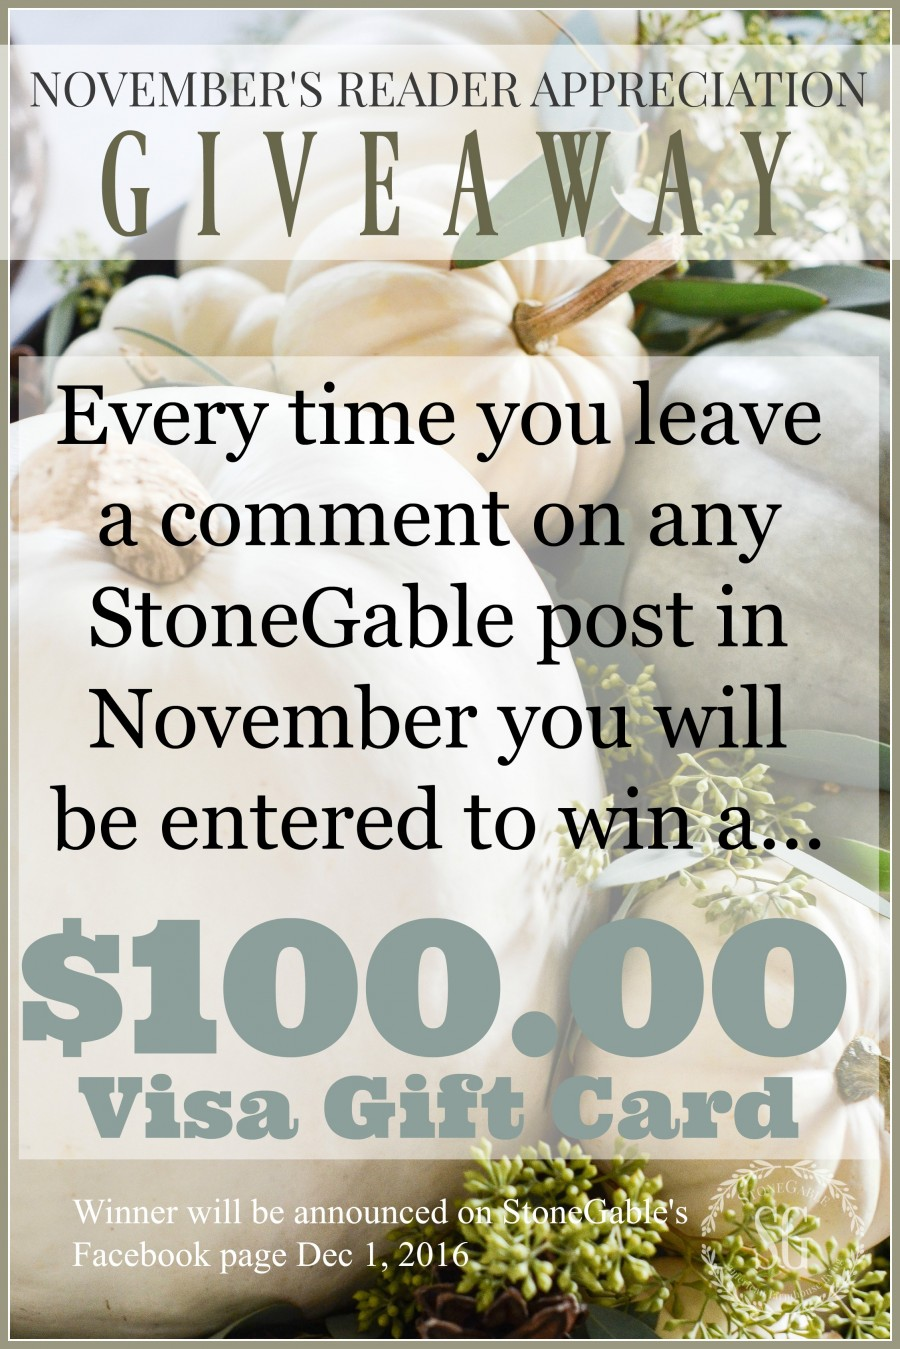 novembers-reader-appreciation-giveaway-stonegableblog-com